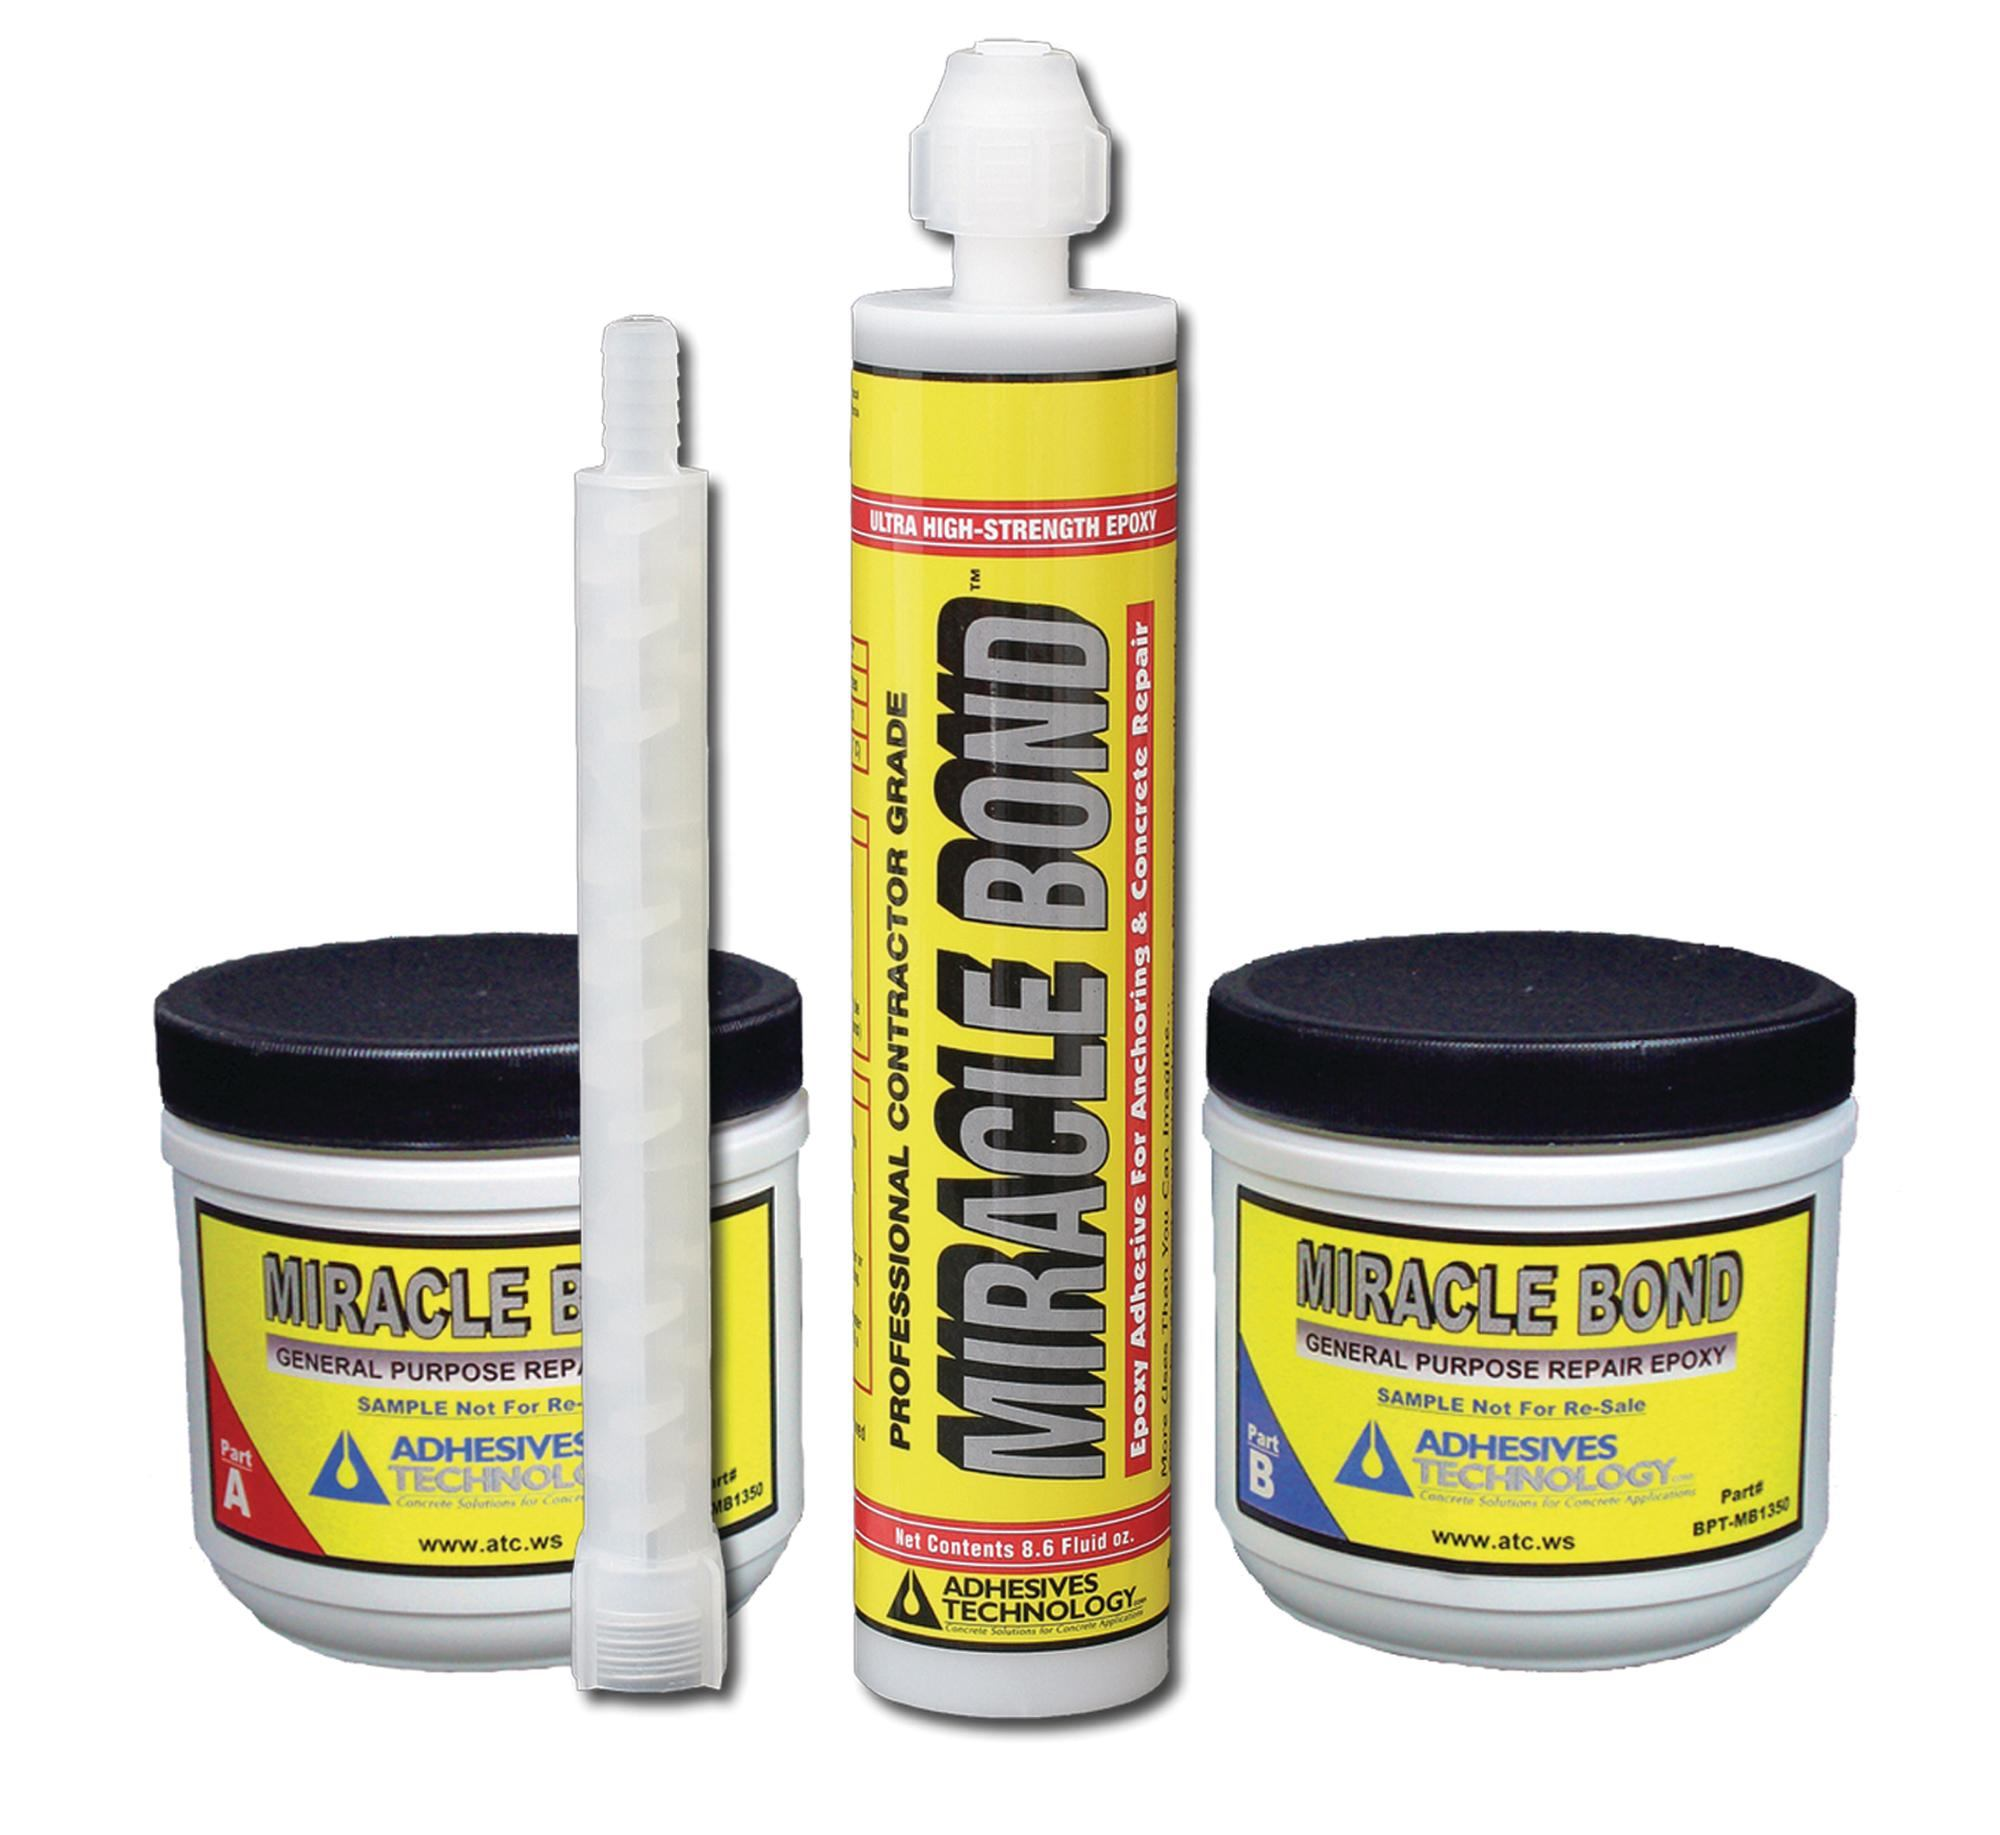 Adhesives Technology Miracle Bond Concrete Construction